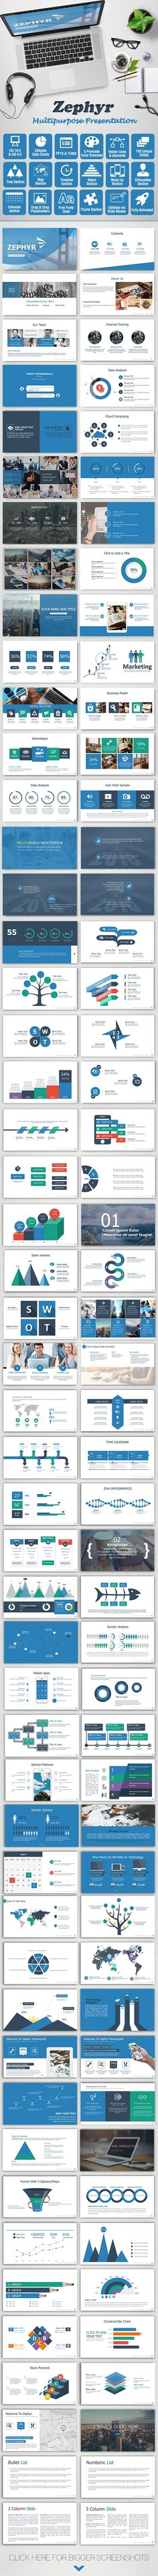 Zephyr Powerpoint Presentation Template. Download here: http://graphicriver.net/item/zephyr-powerpoint-presentation/14967672?ref=ksioks